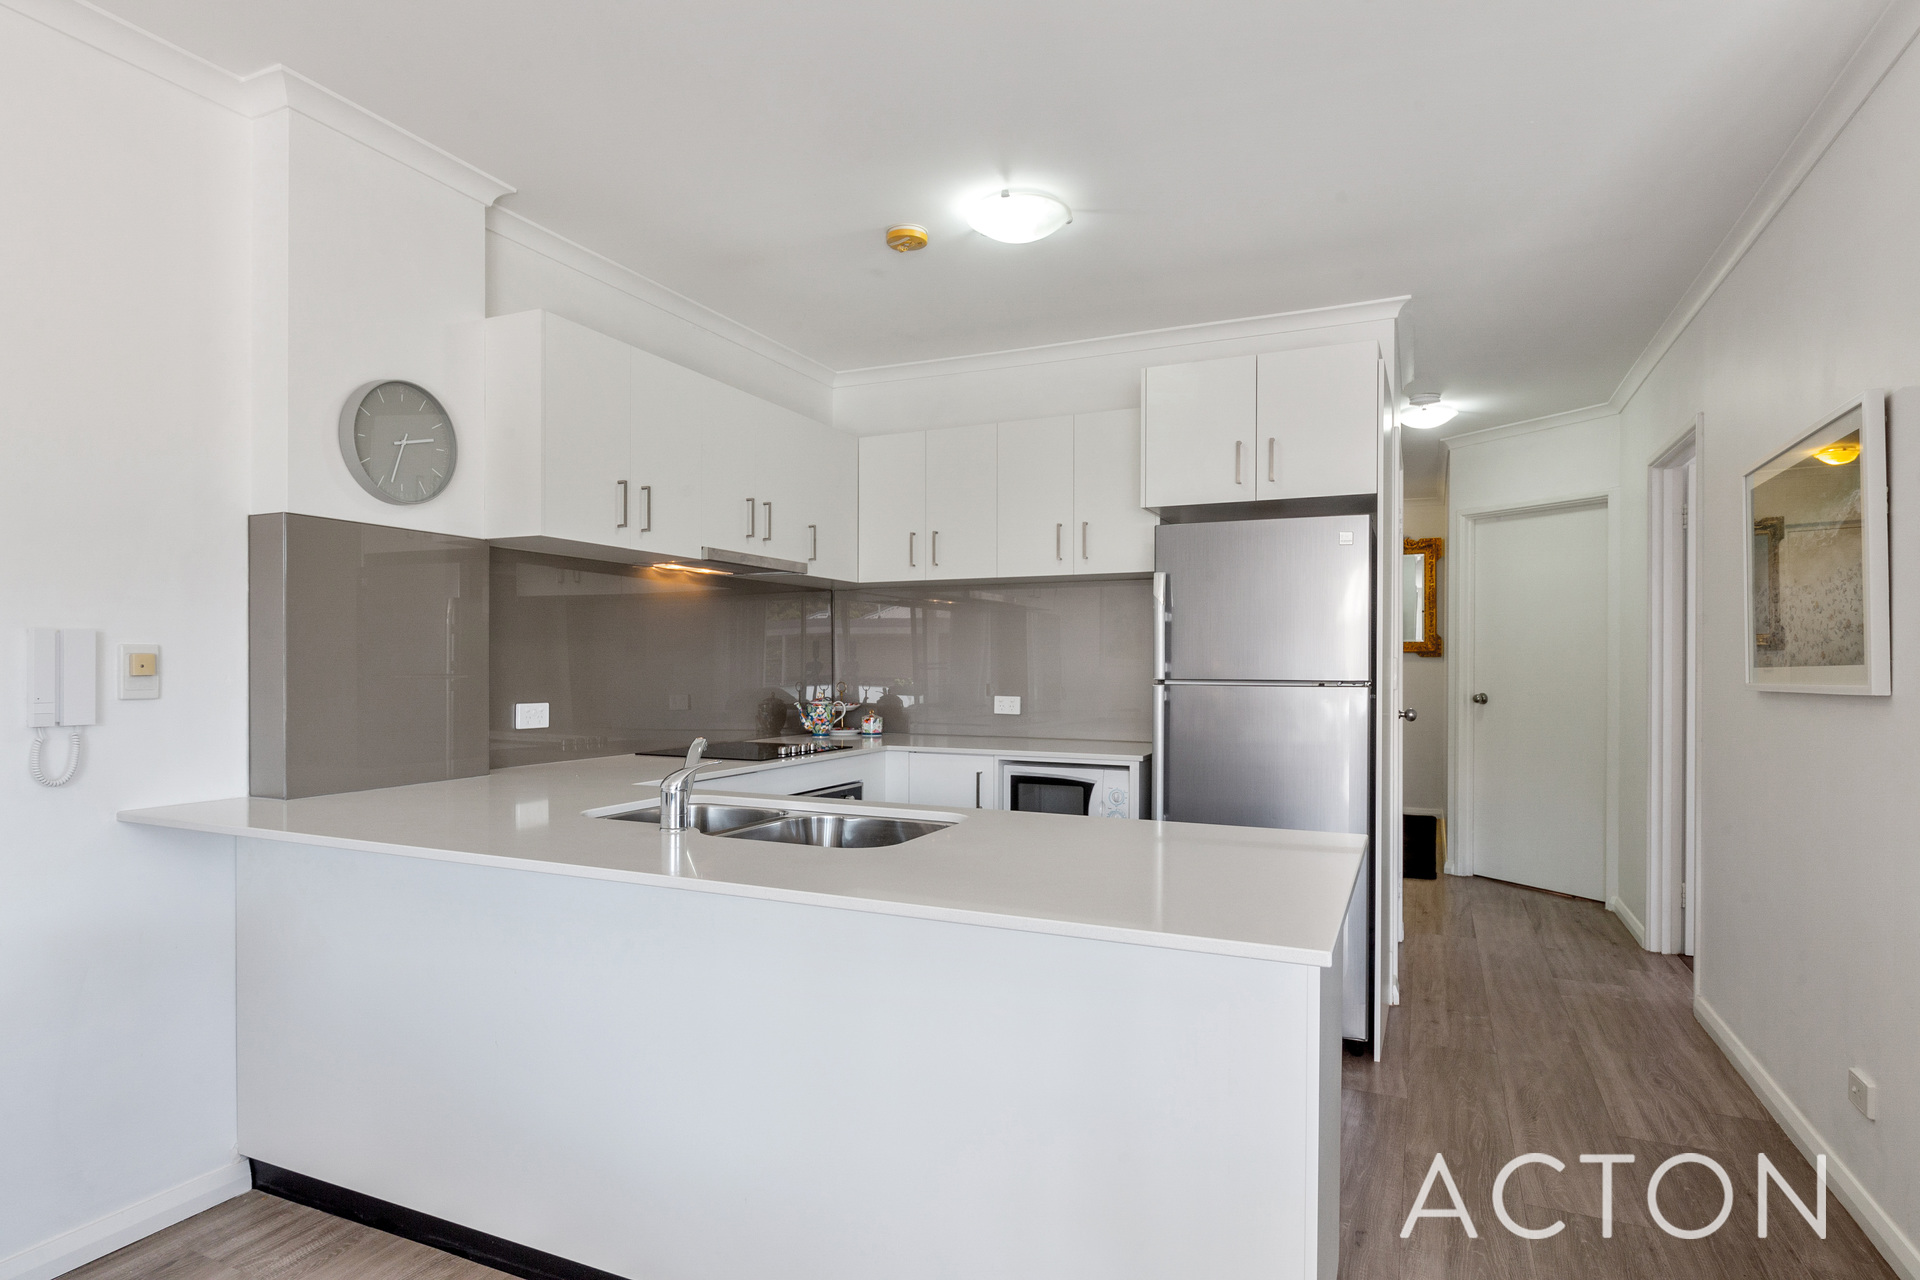 21/58 Kent Street Rockingham - Apartment For Sale - 22502836 - ACTON Projects